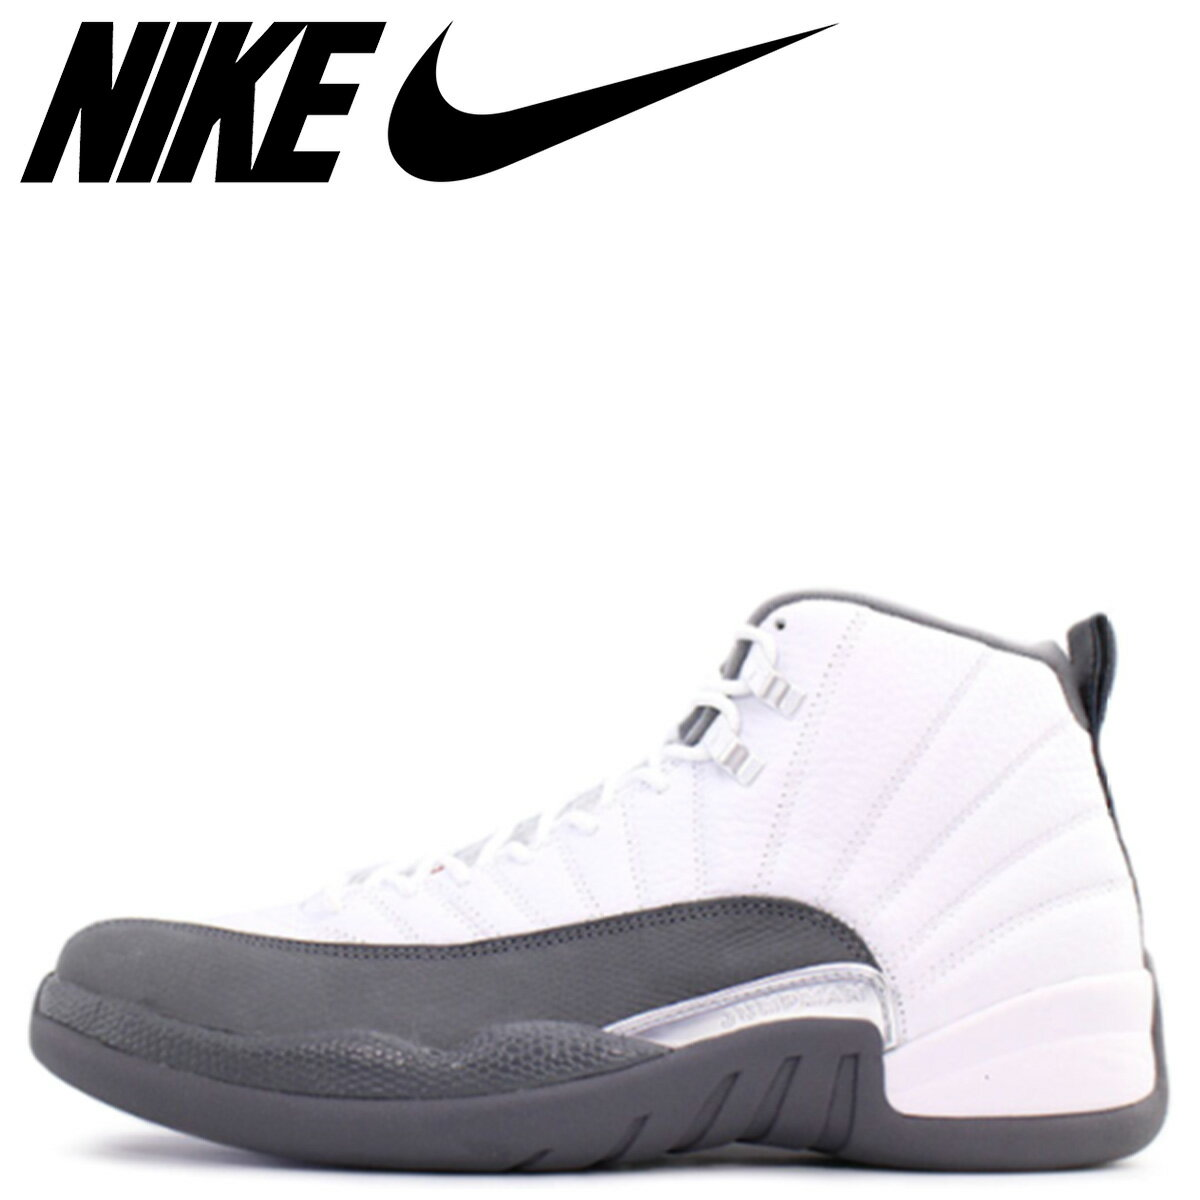 メンズ靴, スニーカー 2000OFF NIKE AIR JORDAN 12 RETRO 12 130690-160 zzi